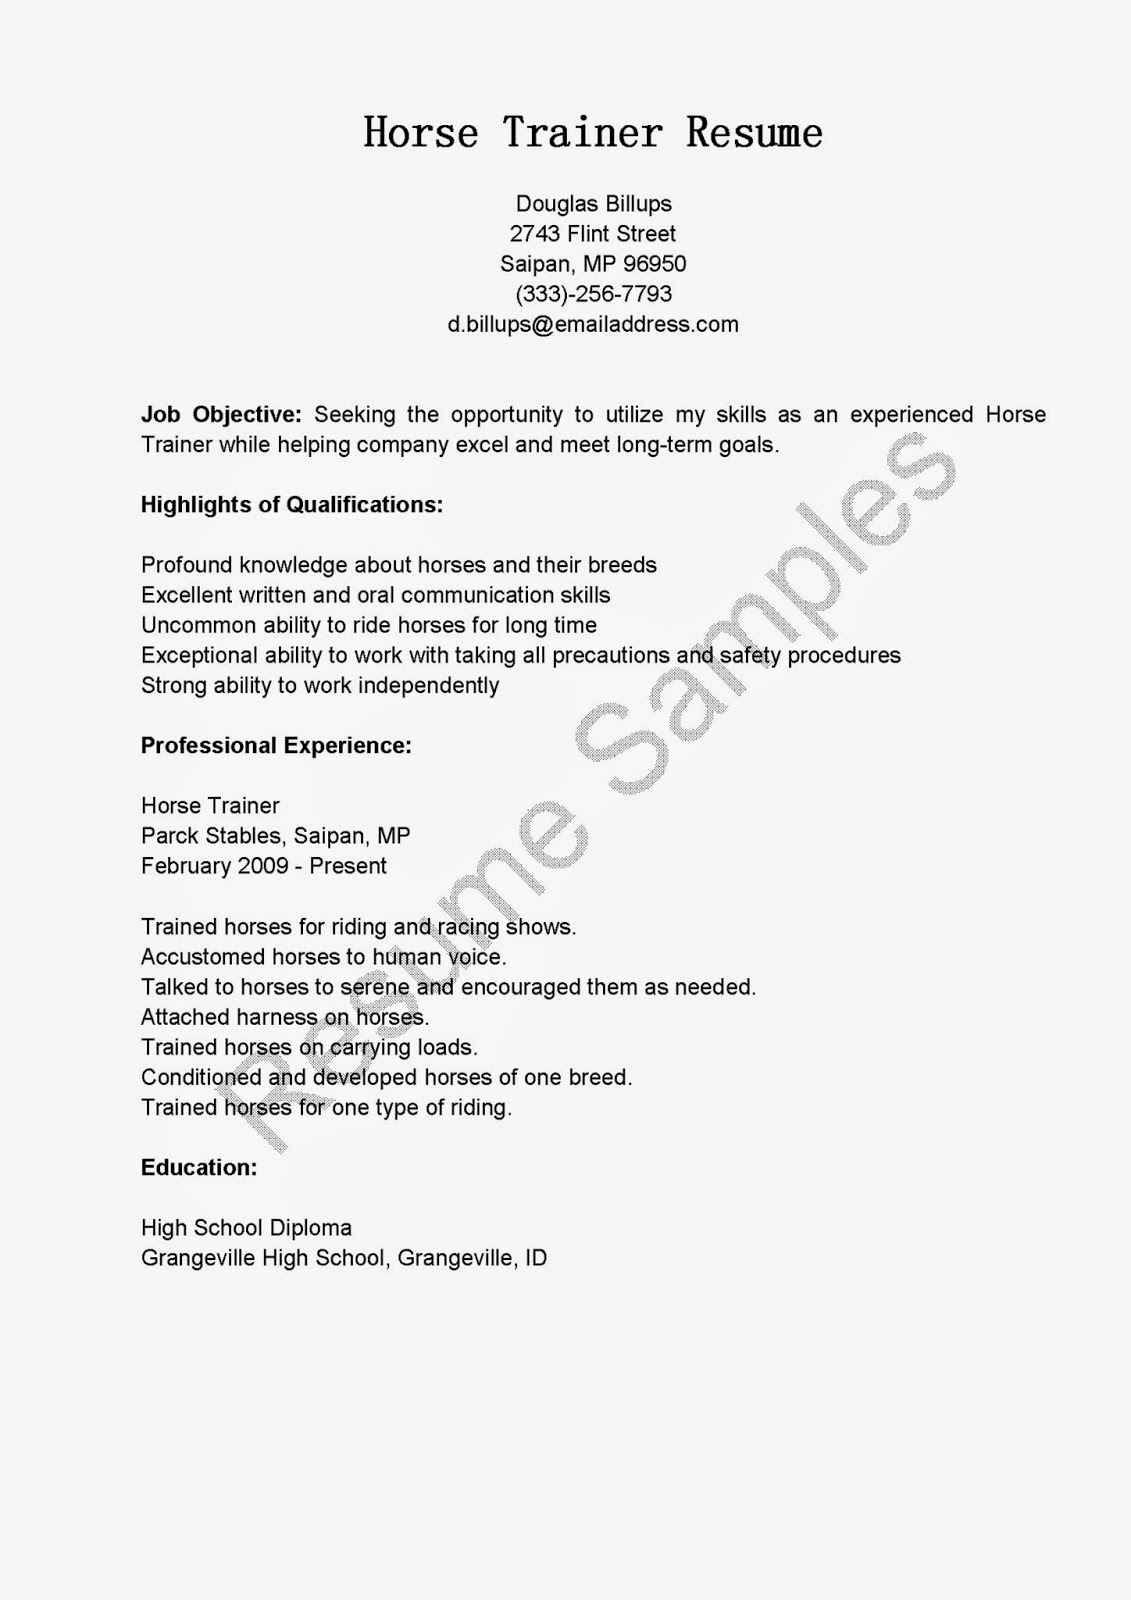 Business Trainer Cover Letter | Fitness Instructor Cover Lette ...